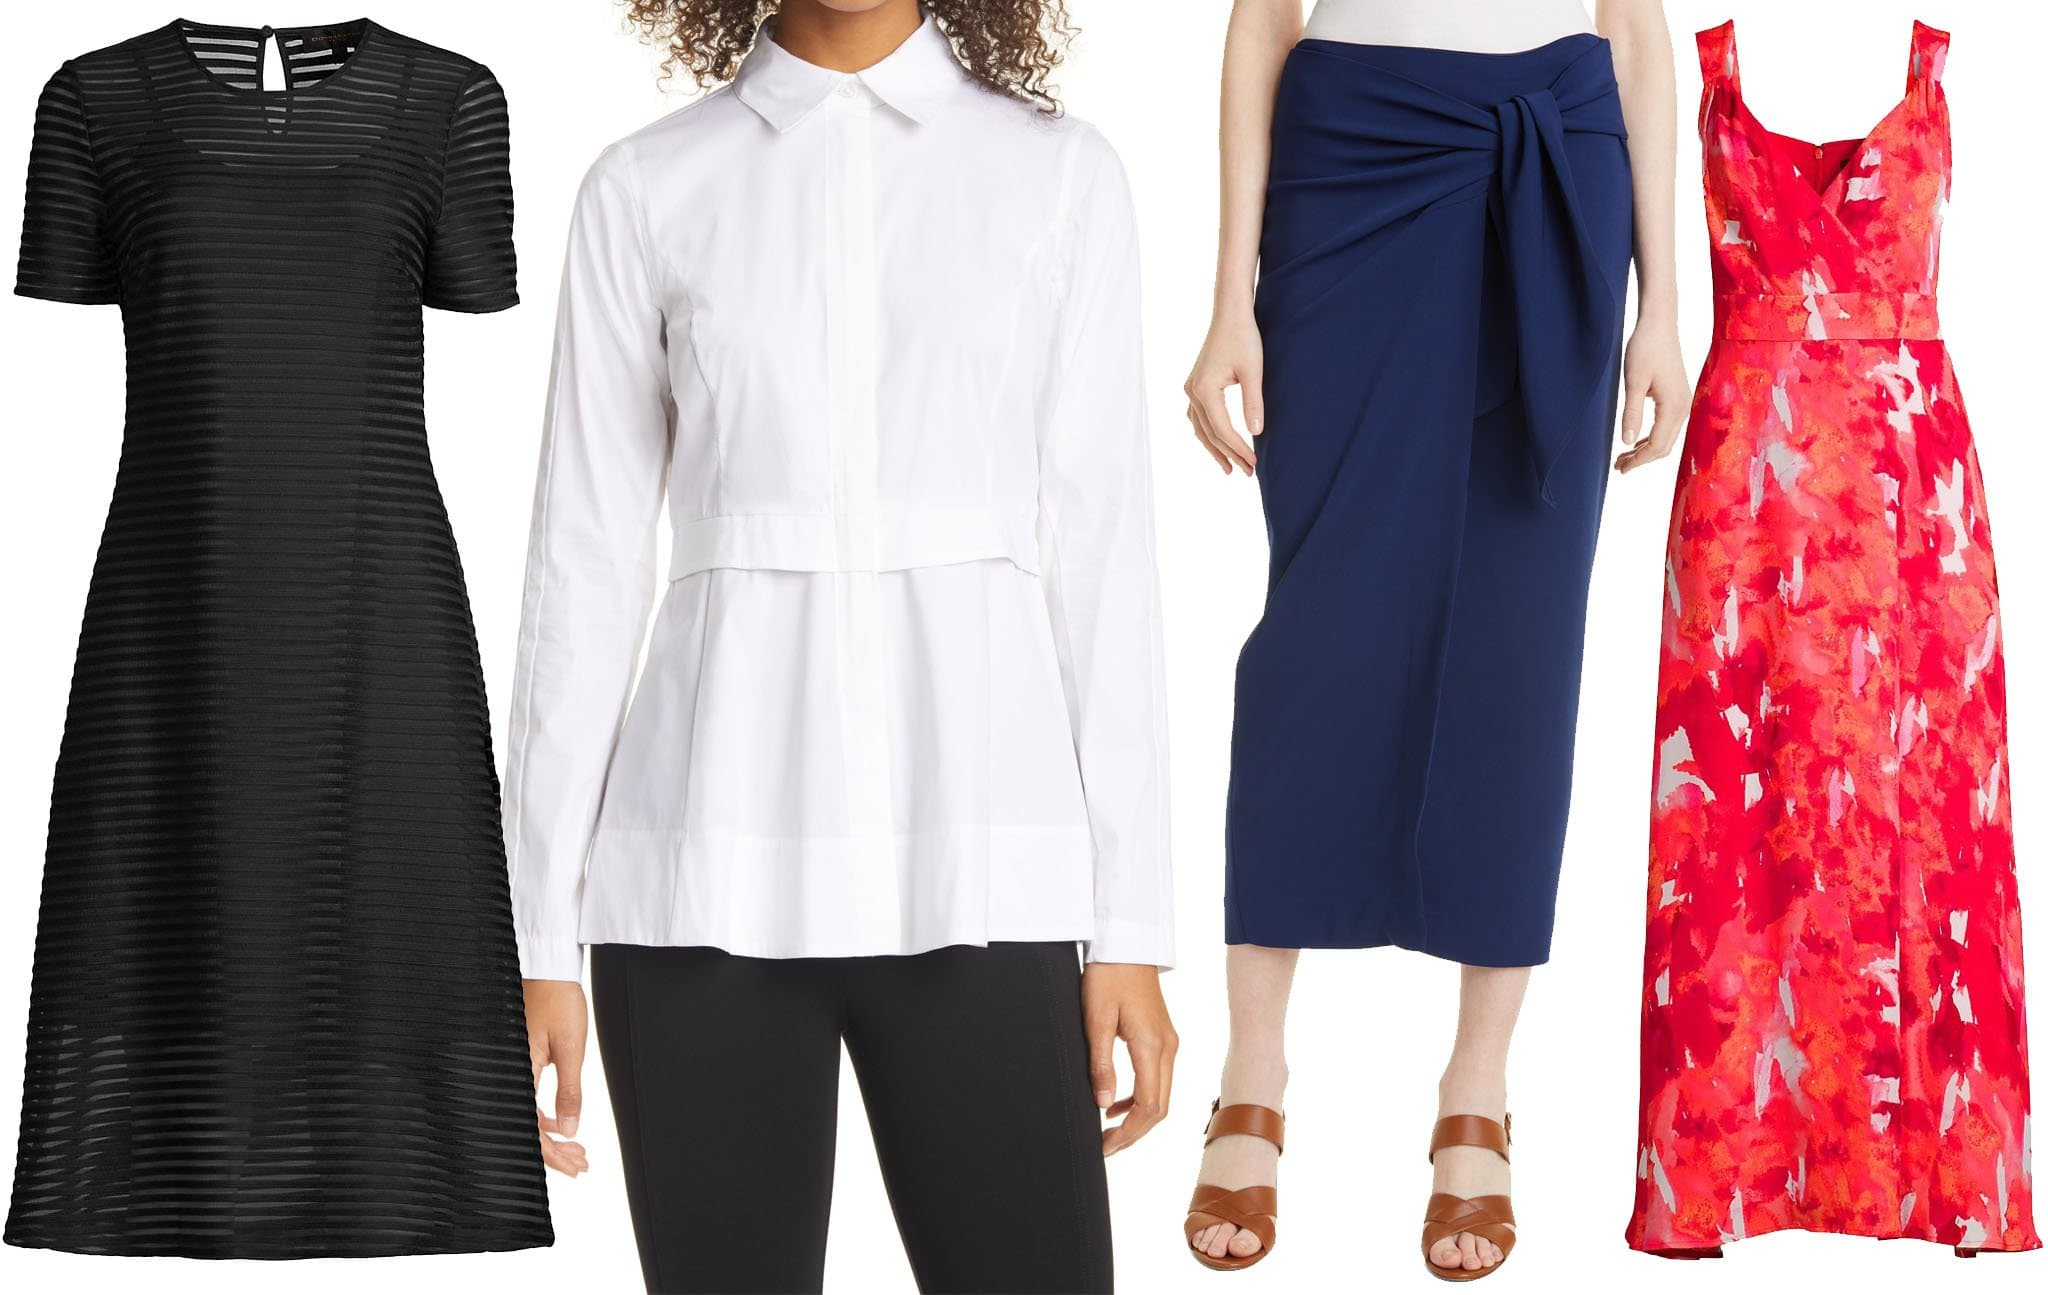 Donna Karan is known for its sleek and modern clothing pieces